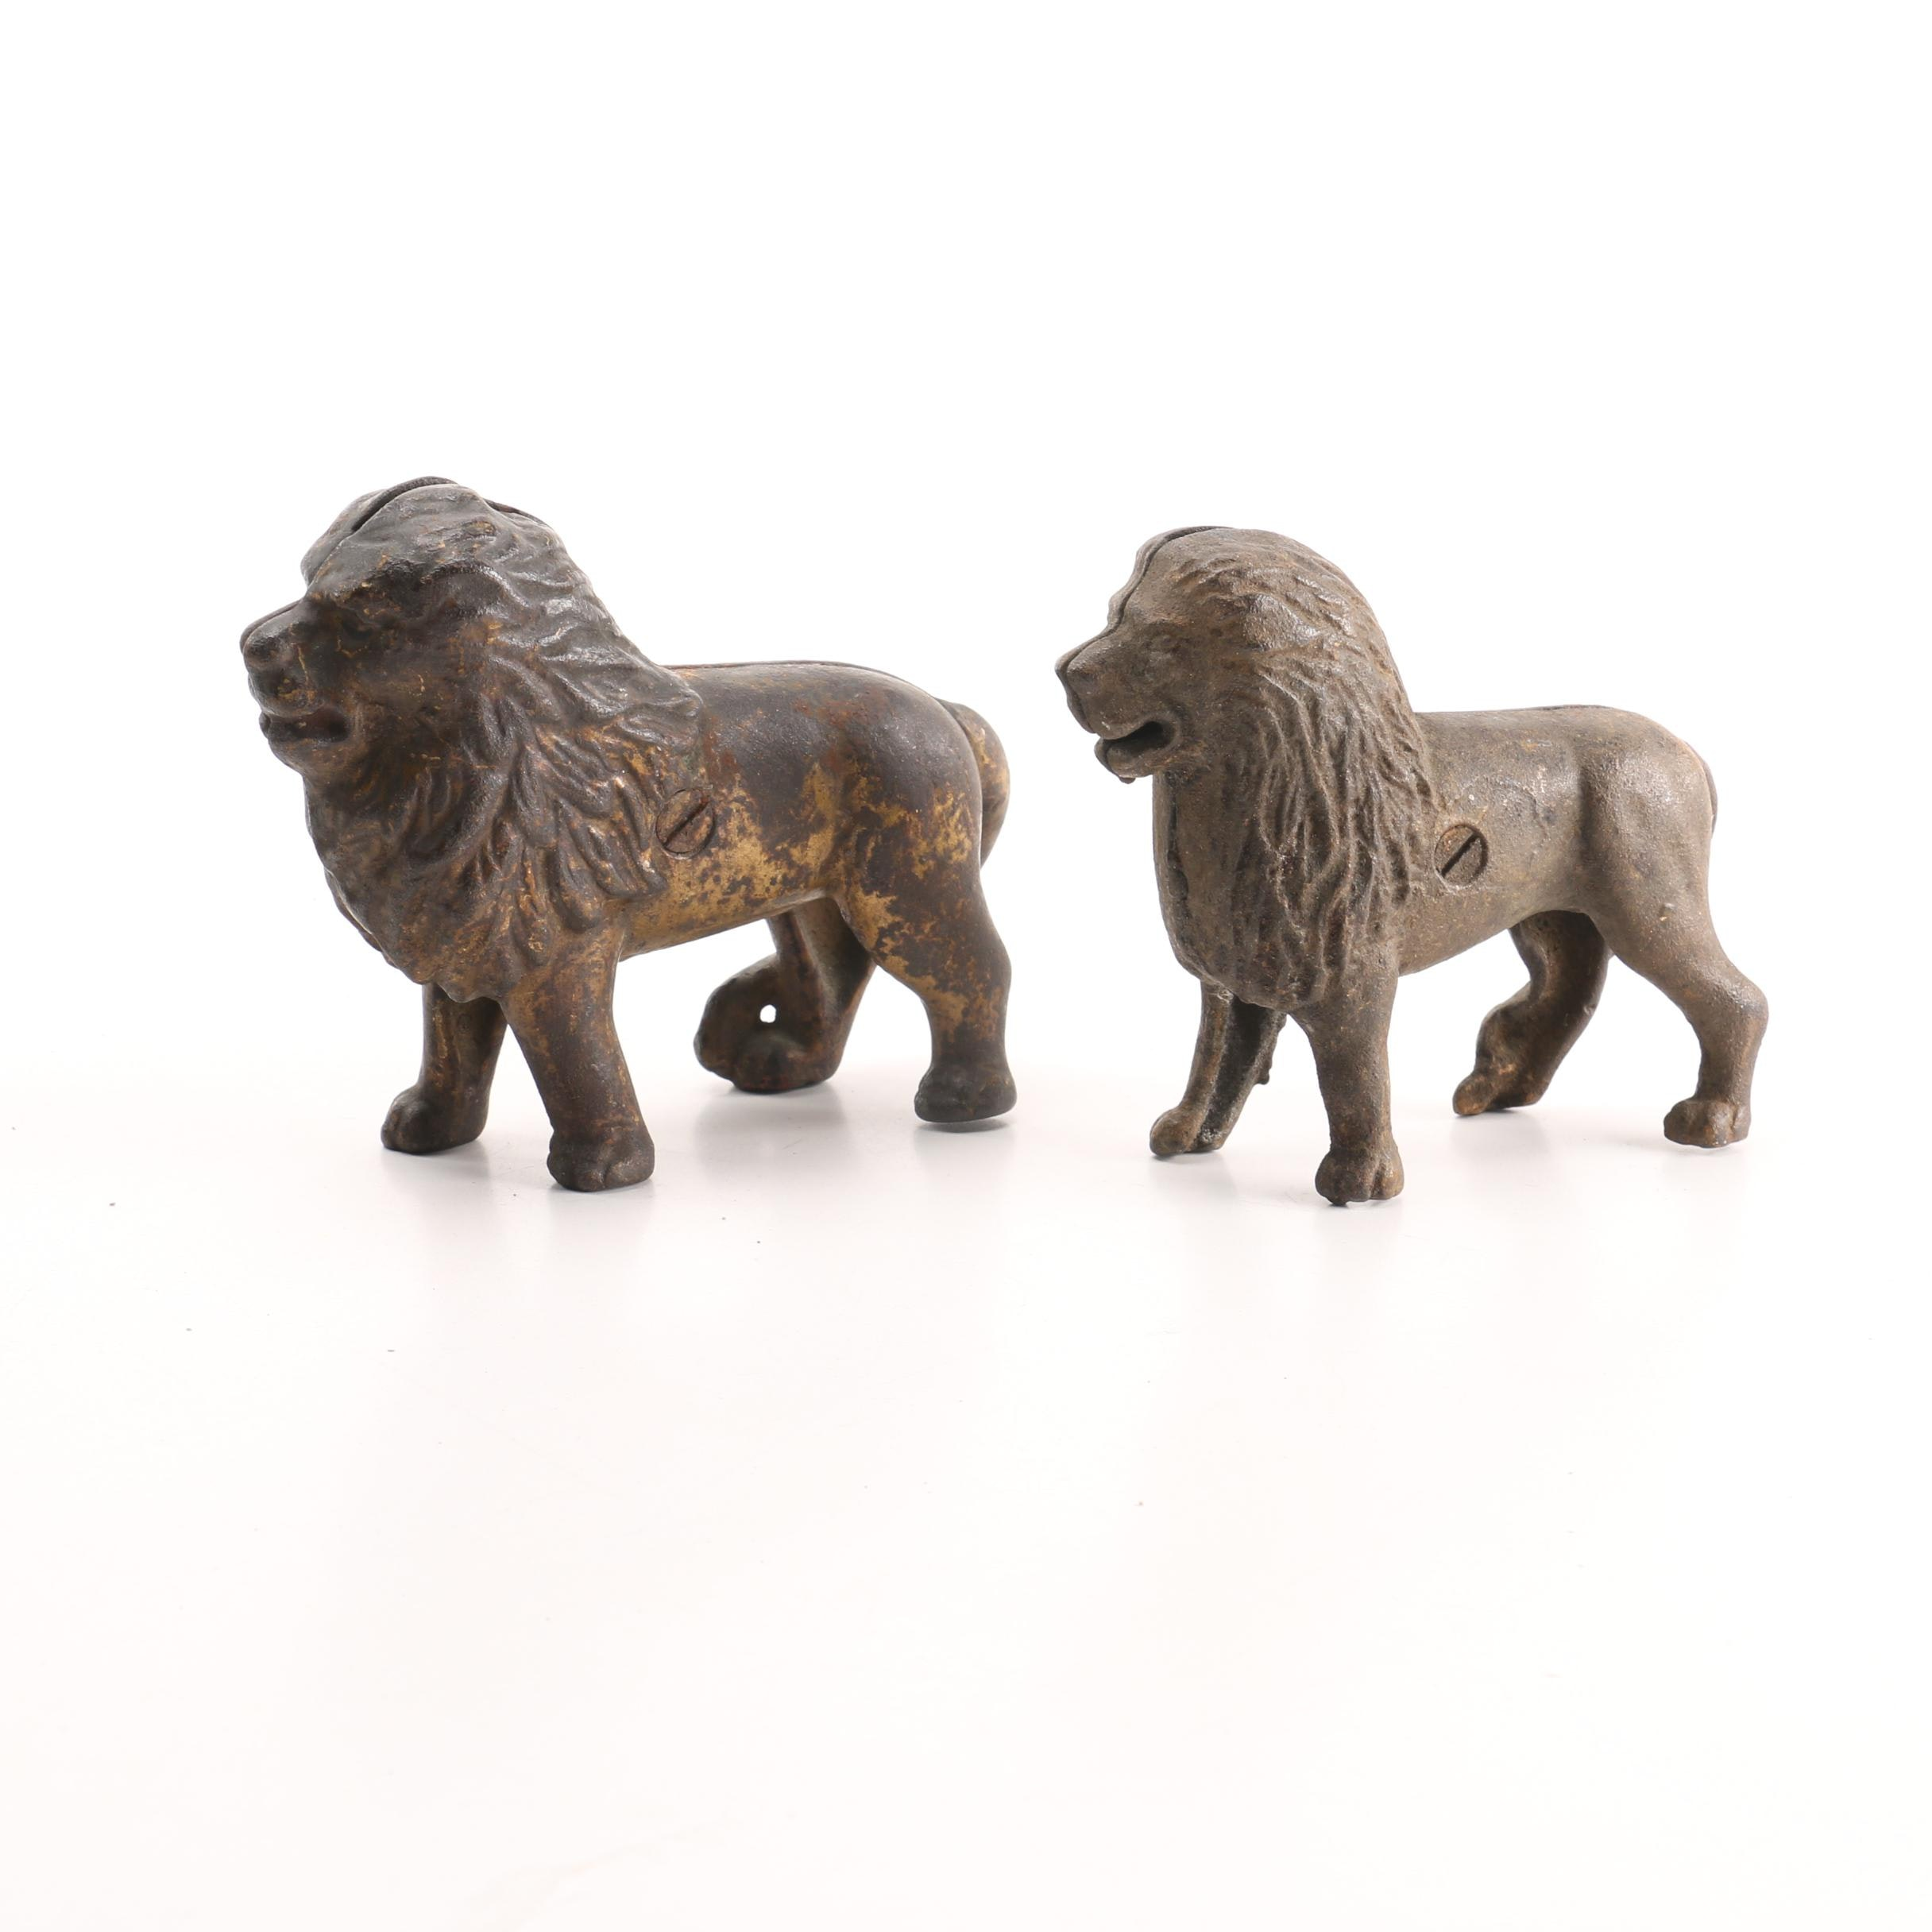 Pair of Antique Cast Iron Lion's Penny Banks